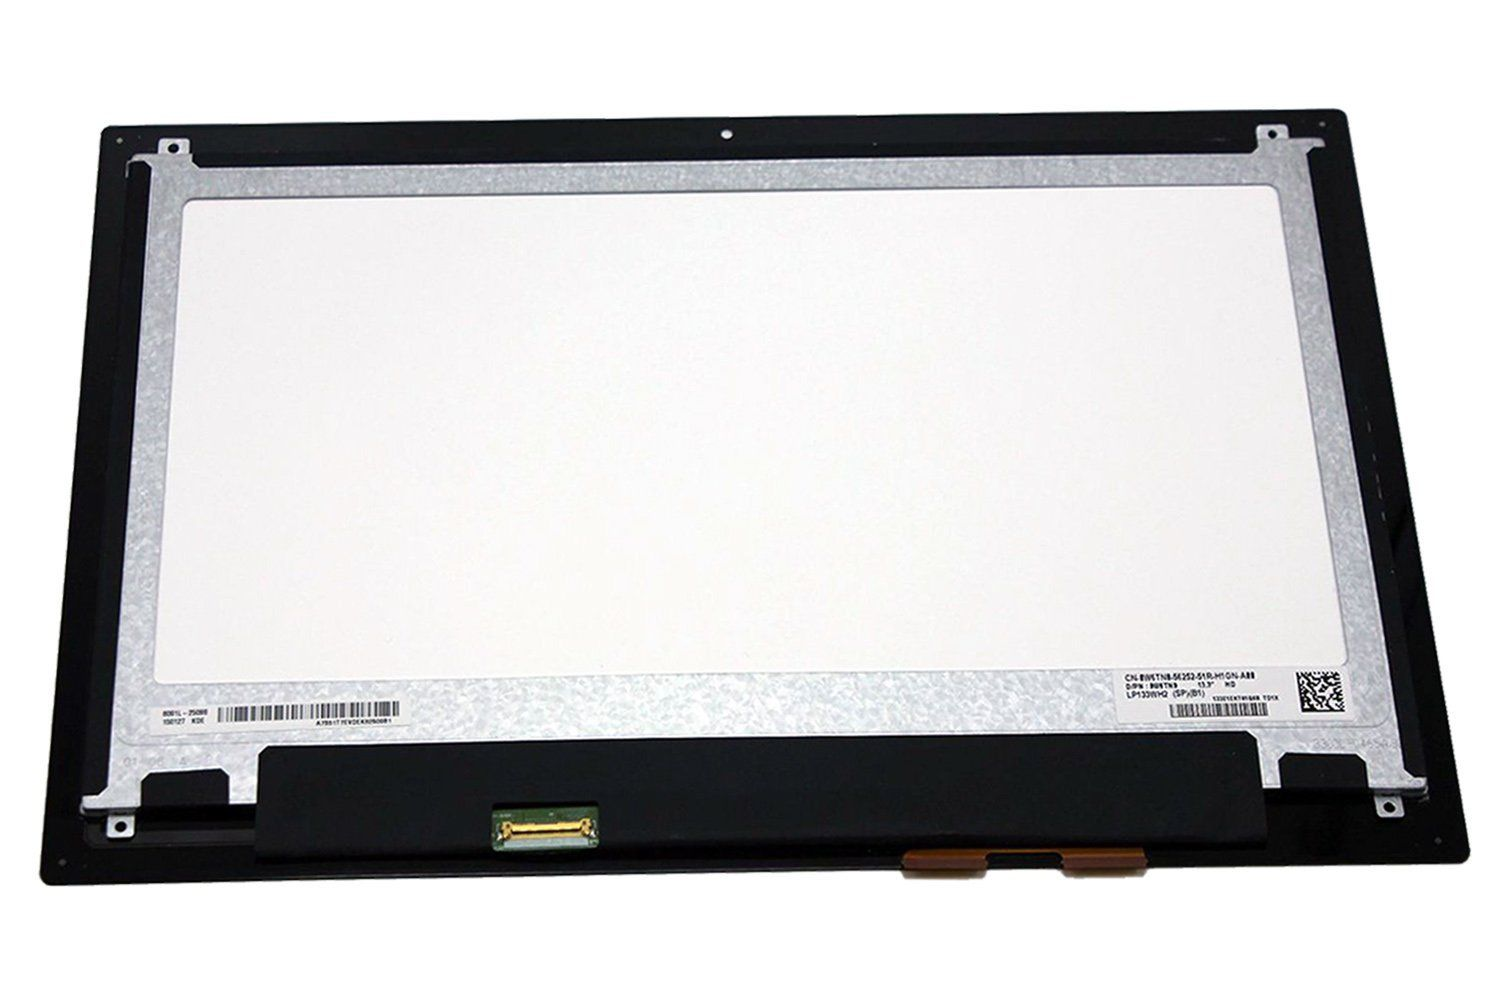 New For DELL Inspiron 13 7347 7348 HD 13.3'' Touch LCD Screen Panel LP133WH2-SPB1 0W6TN0 13 3 lcd screen for lg lp133wh2 spb1 lp133wh2 sp b1 laptop spb1 13 7347 touch assembly